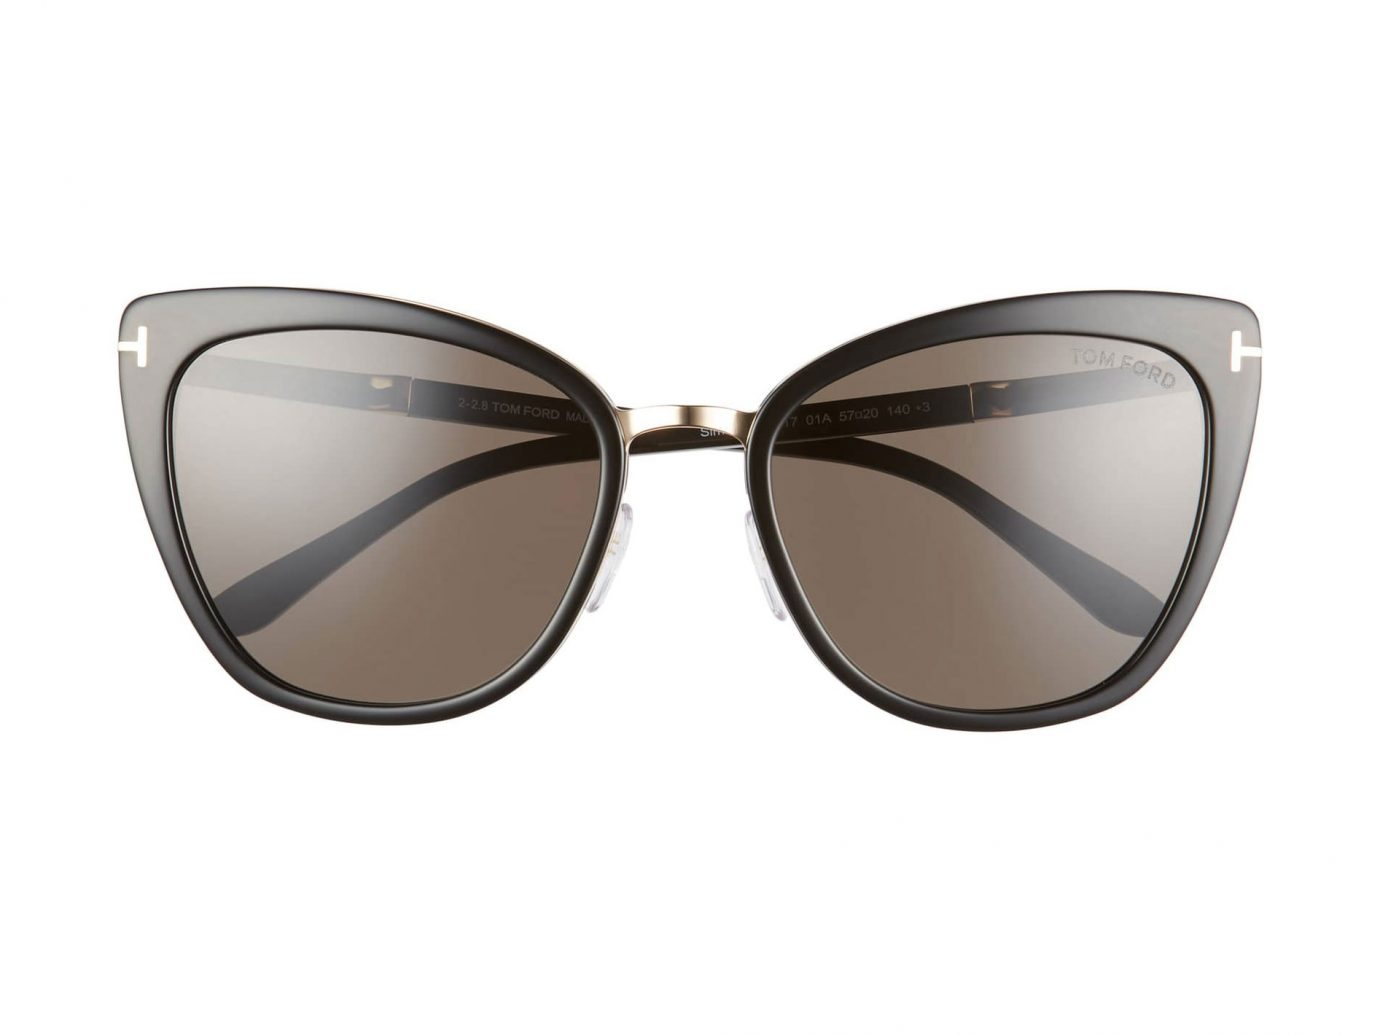 Tom Ford Simona 56mm Sunglasses